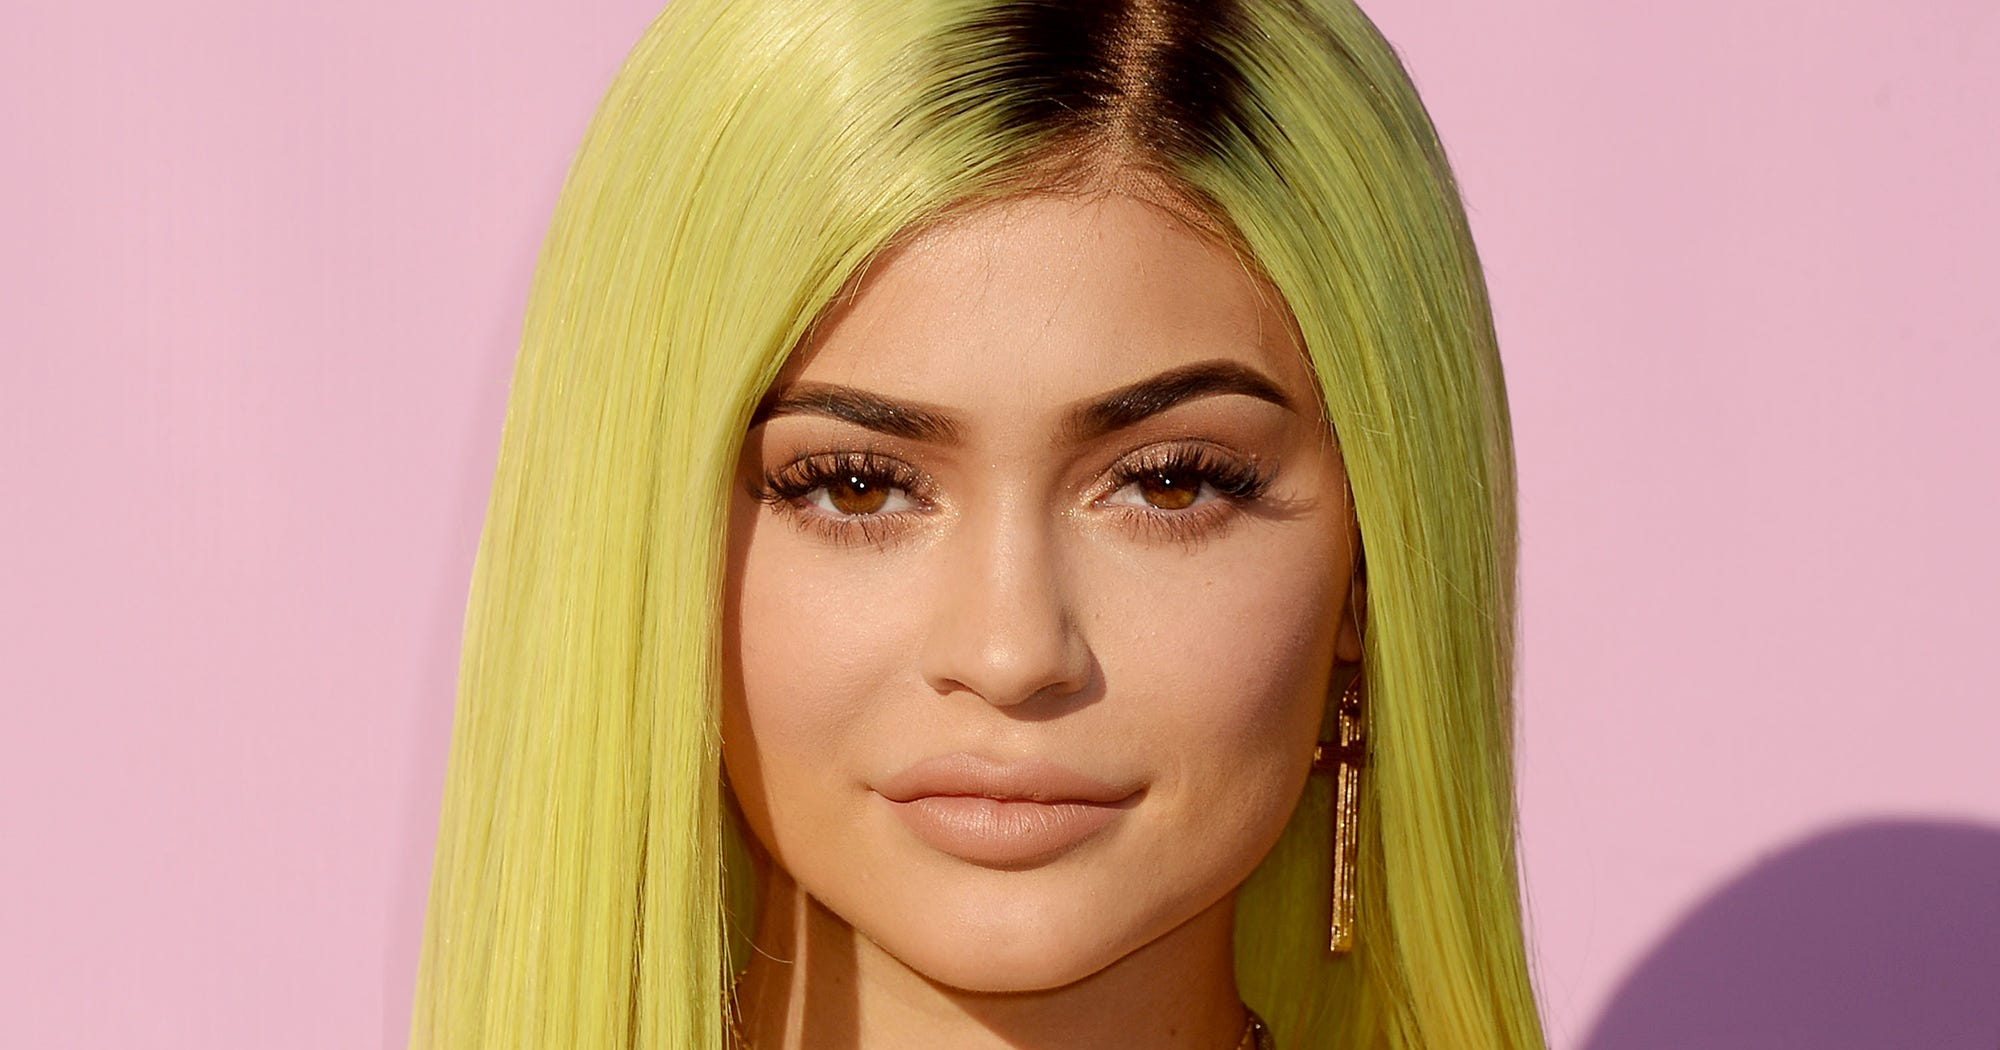 How Will Kylie Jenner Reveal Her Reported Pregnancy?